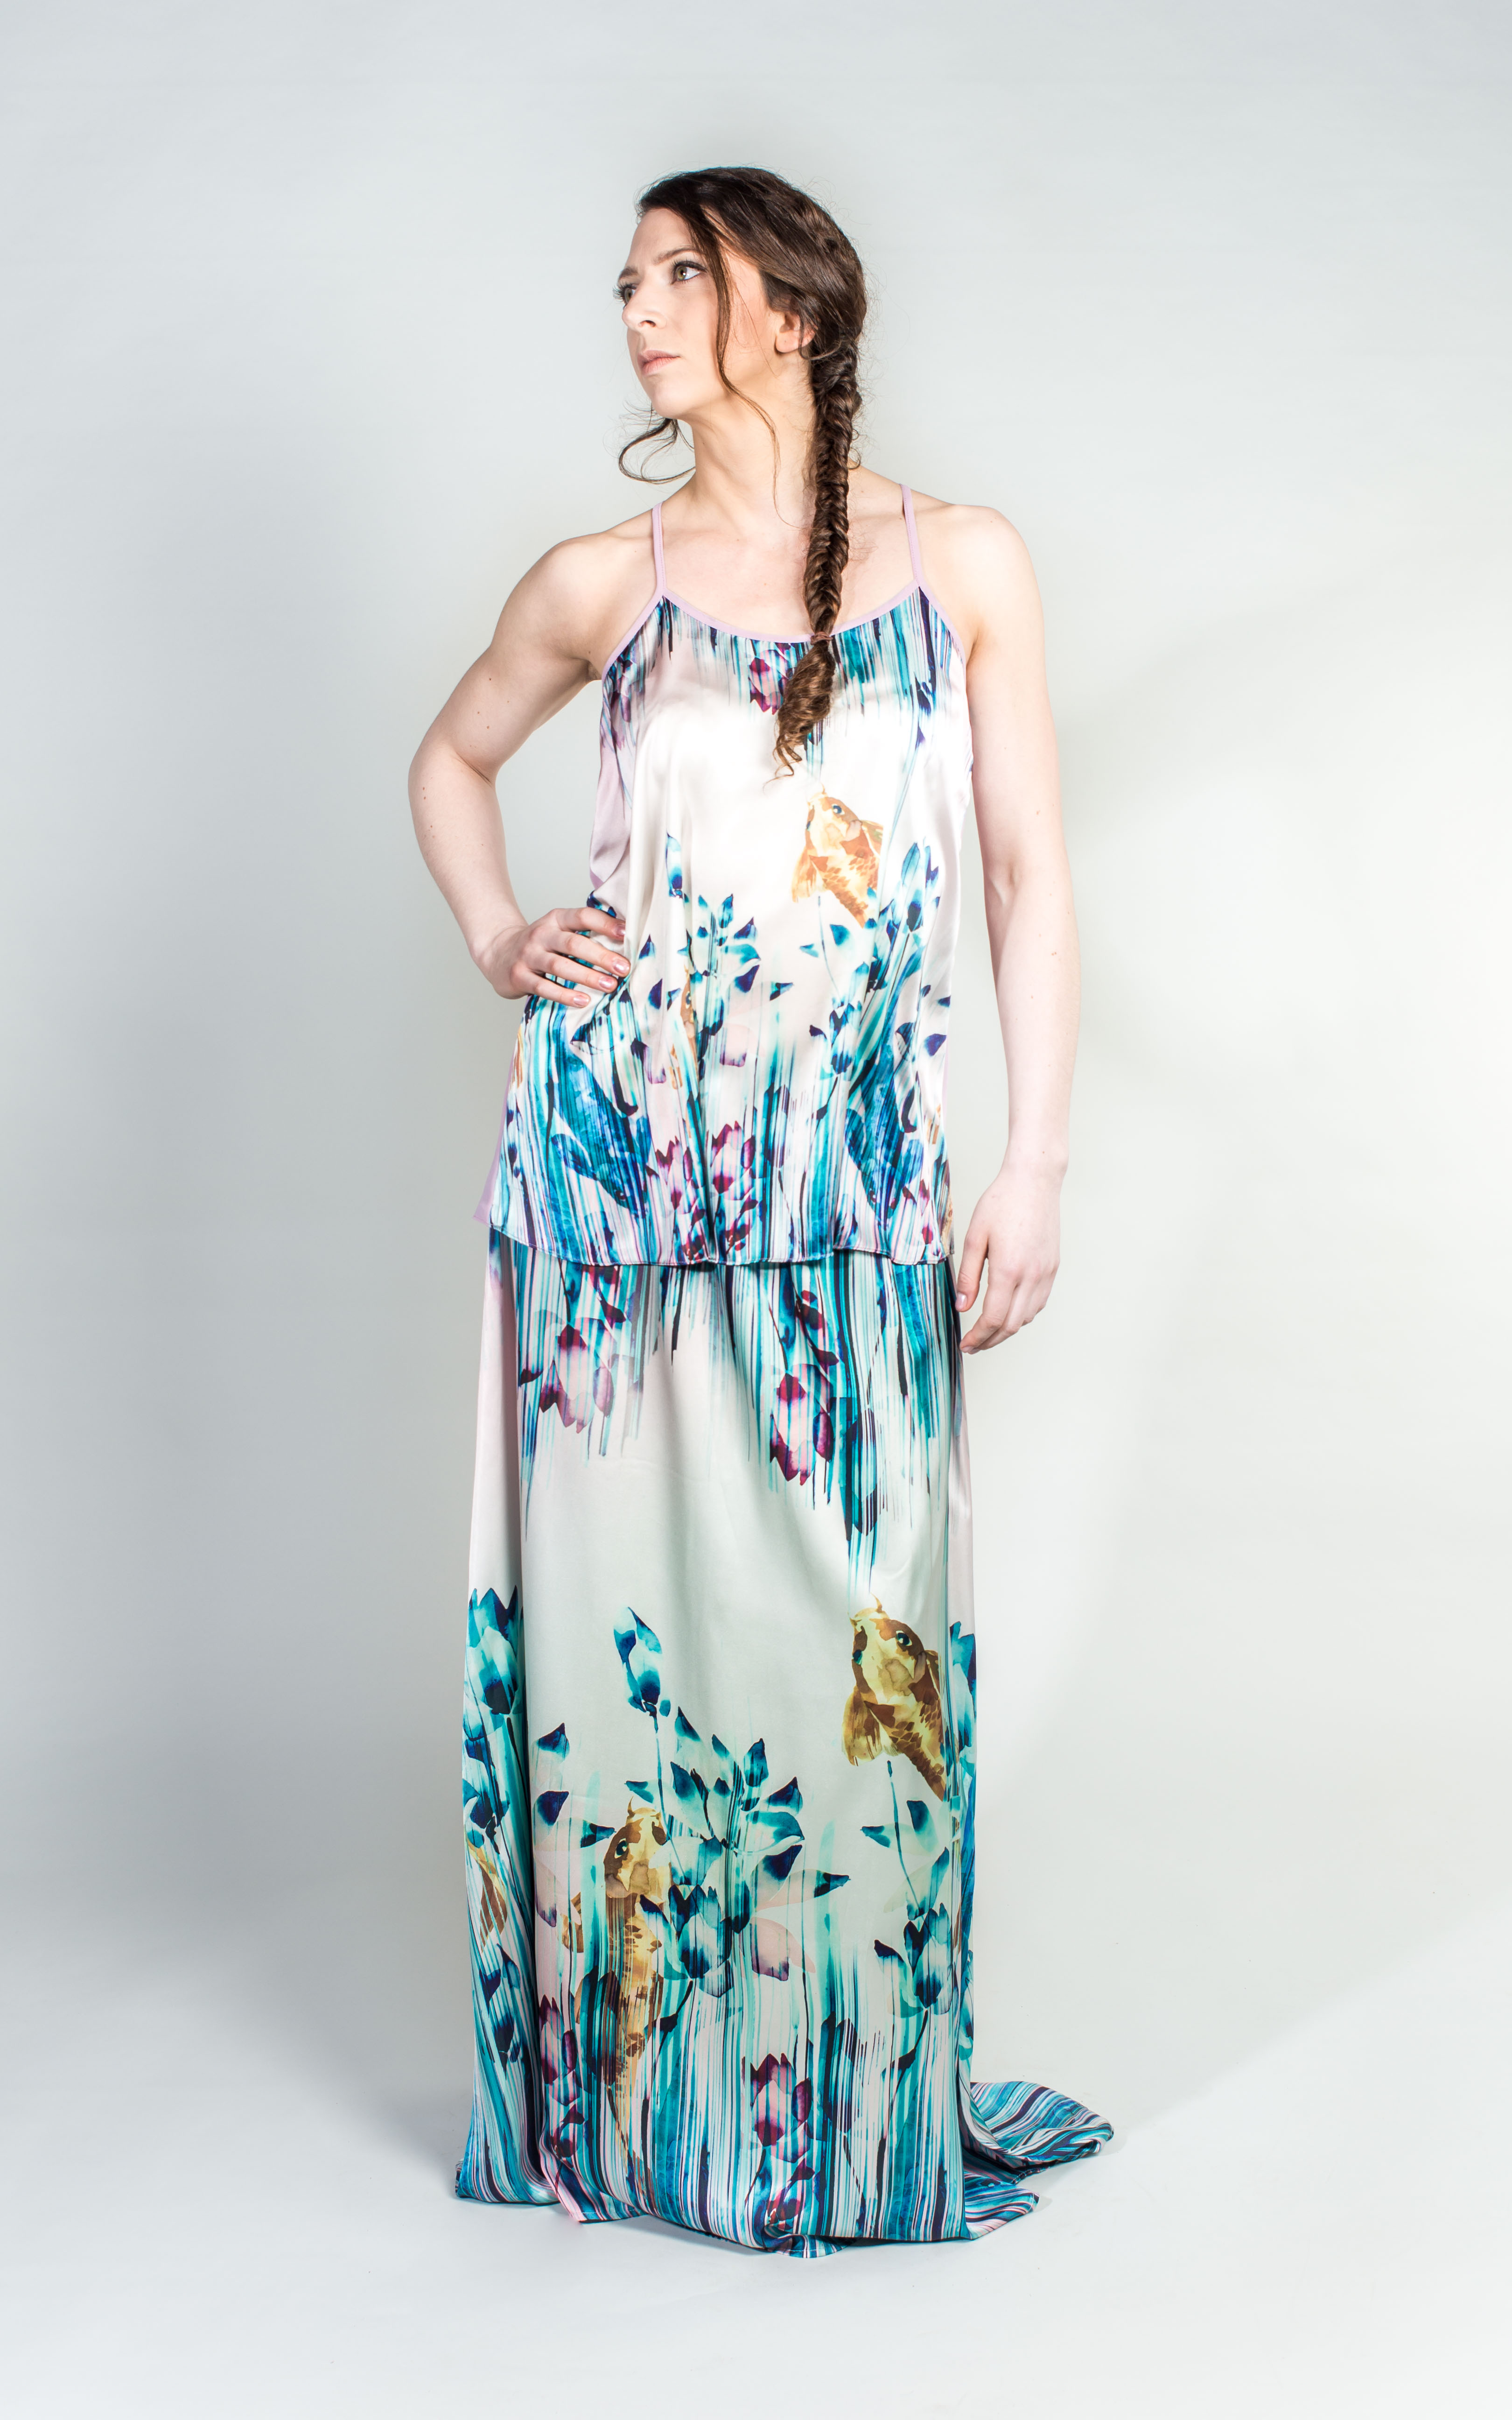 Want her dress - 629